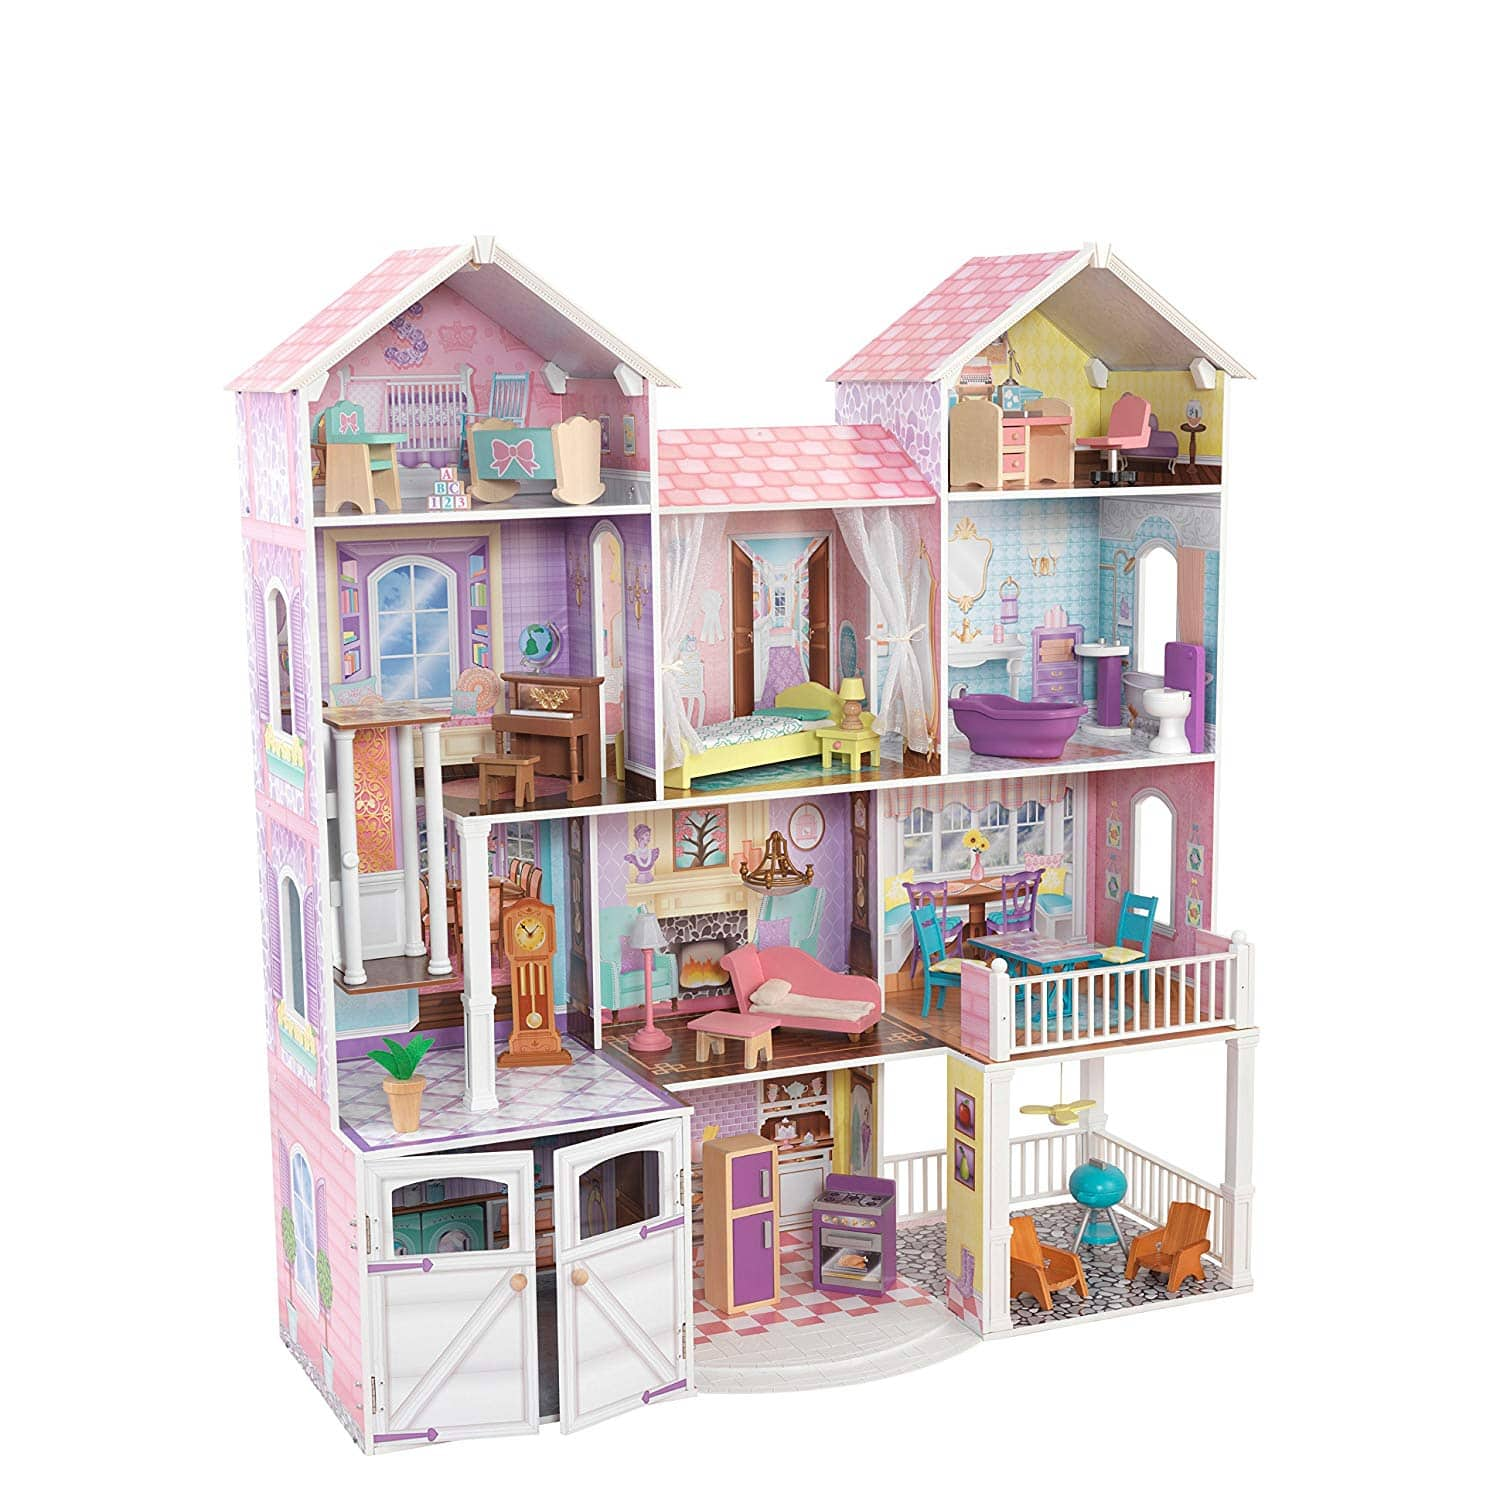 """53"""" KidKraft Country Estate Wooden Dollhouse for 12"""" Dolls with 31 Piece Accessories $71.72 Target w/REDcard Free Ship"""